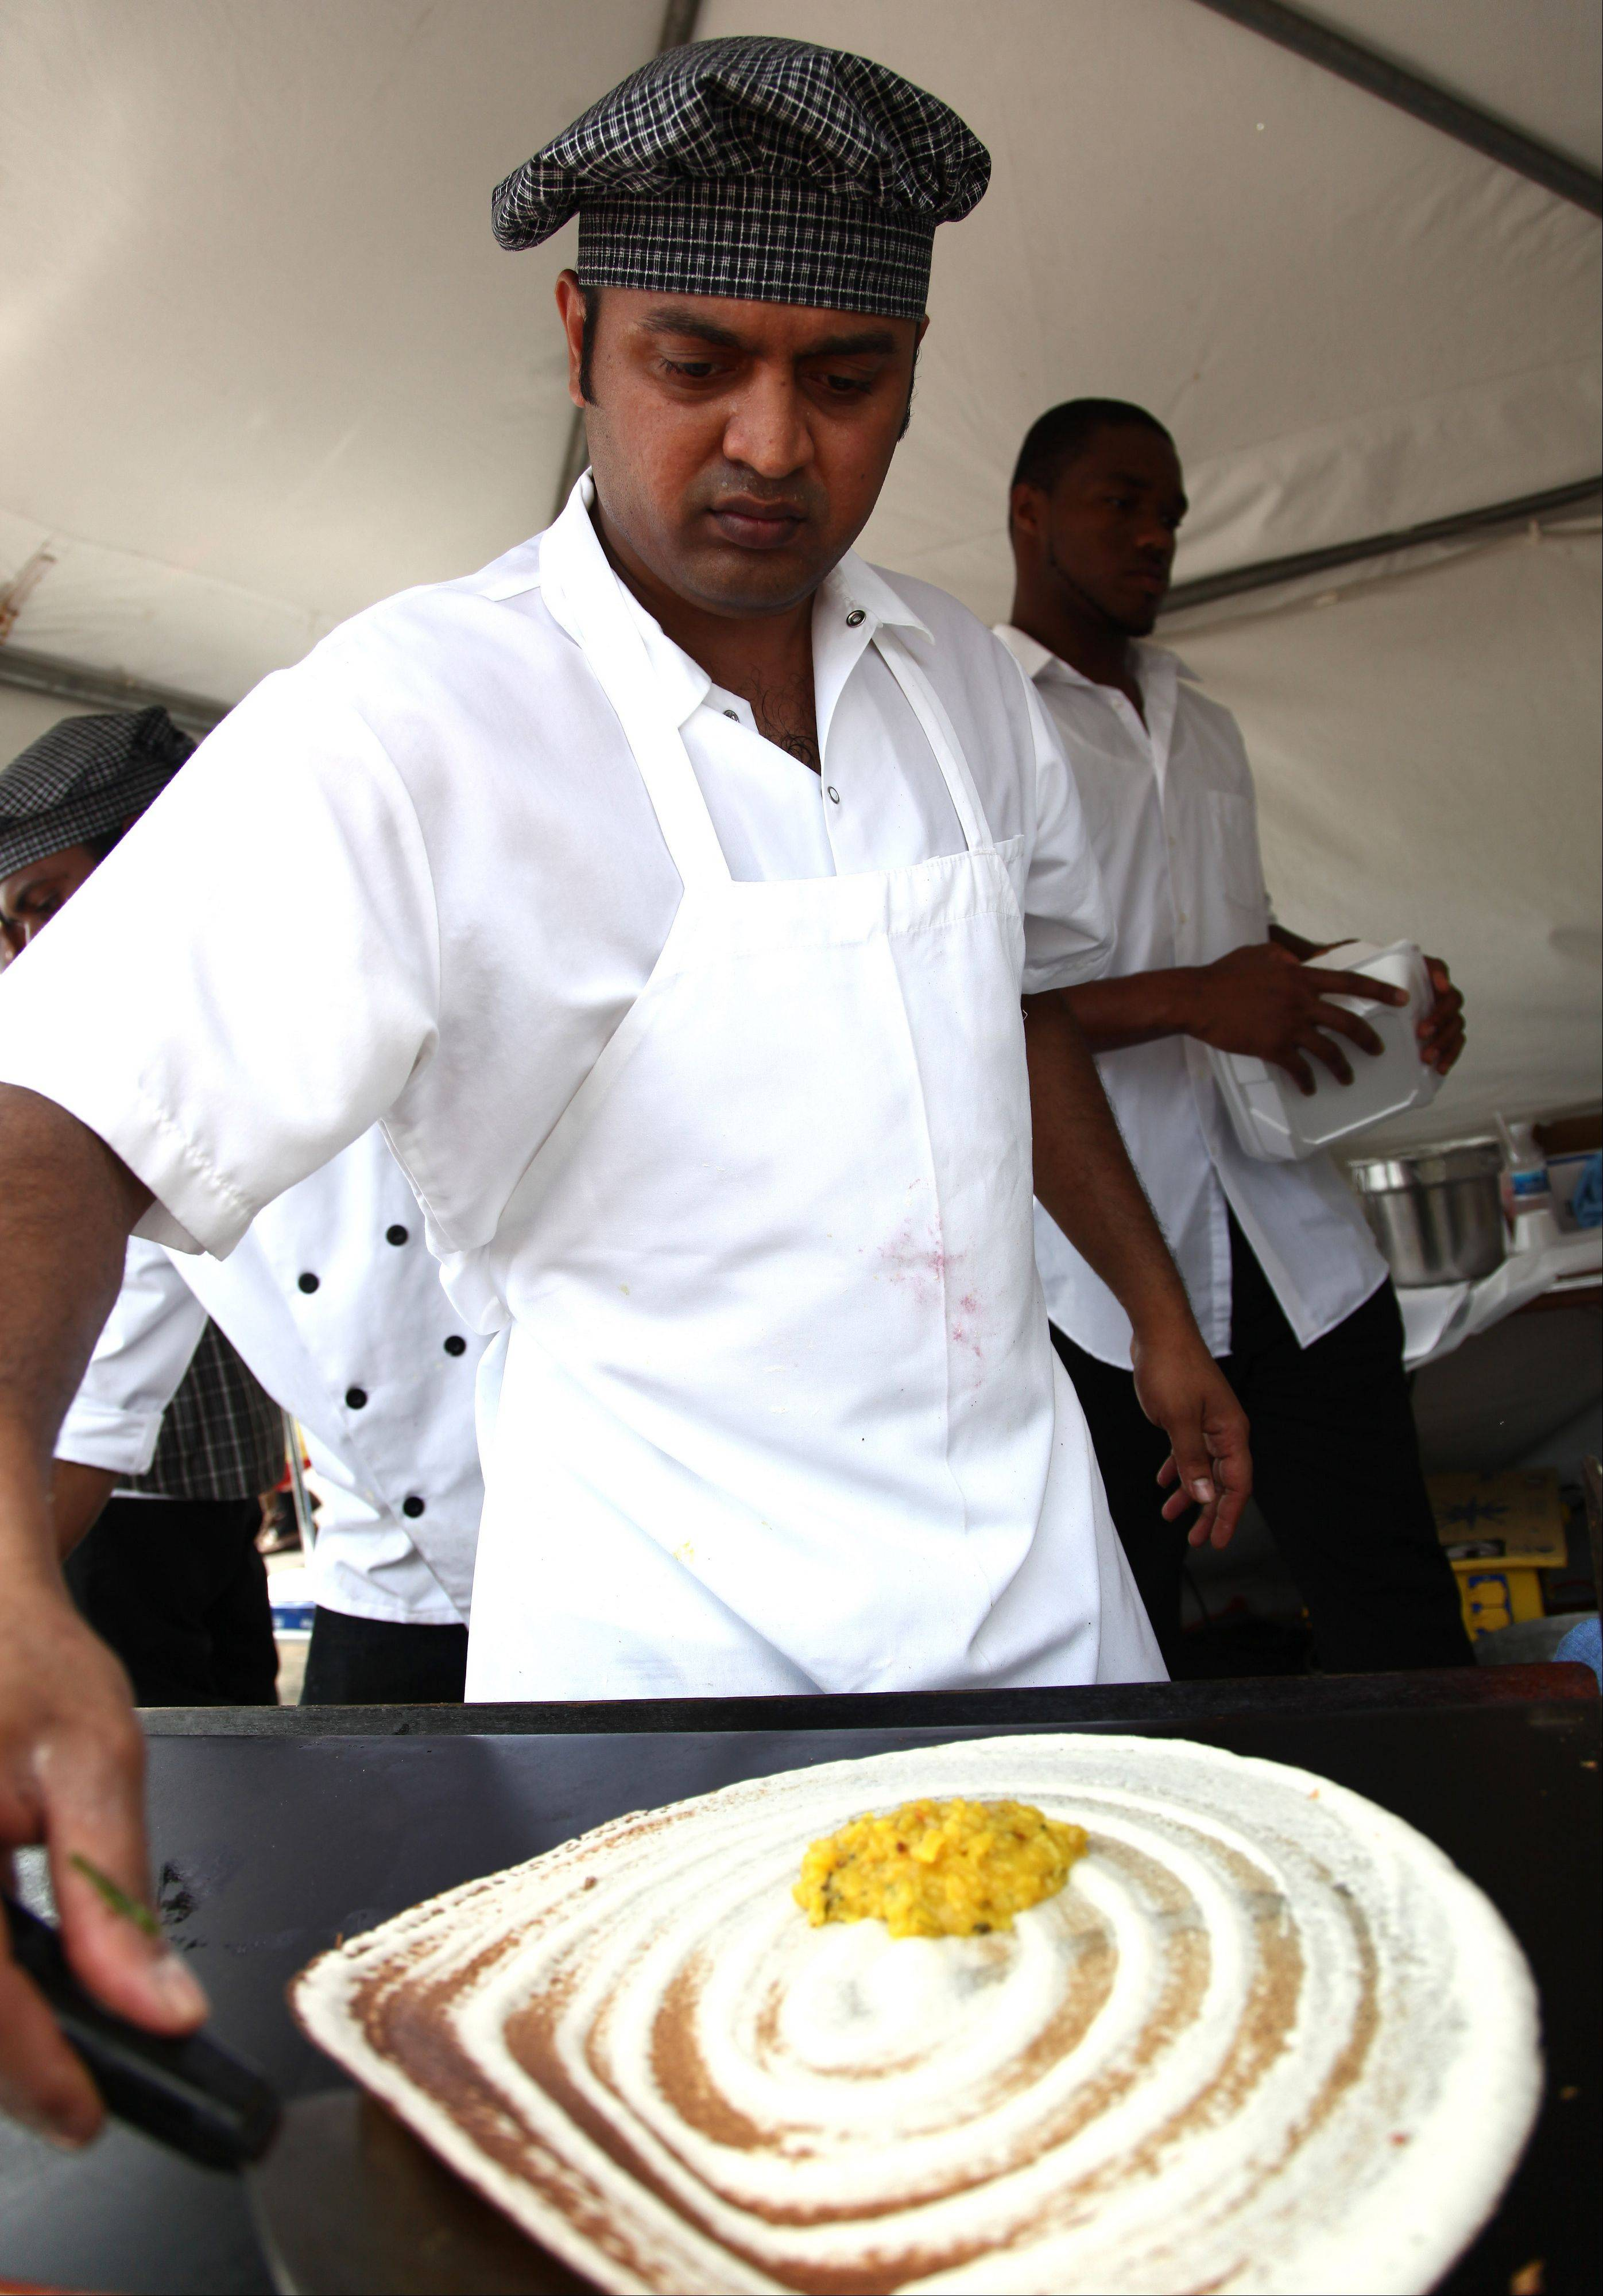 Vegetarian cooking demonstrations are a big draw at Veggie Fest, which runs 11 a.m. to 8 p.m. Saturday and Sunday at Science of Spirituality Meditation Center, 4S175 Naperville Road in Naperville. Here, Guru Prasad cooks up some Dosa in 2009.